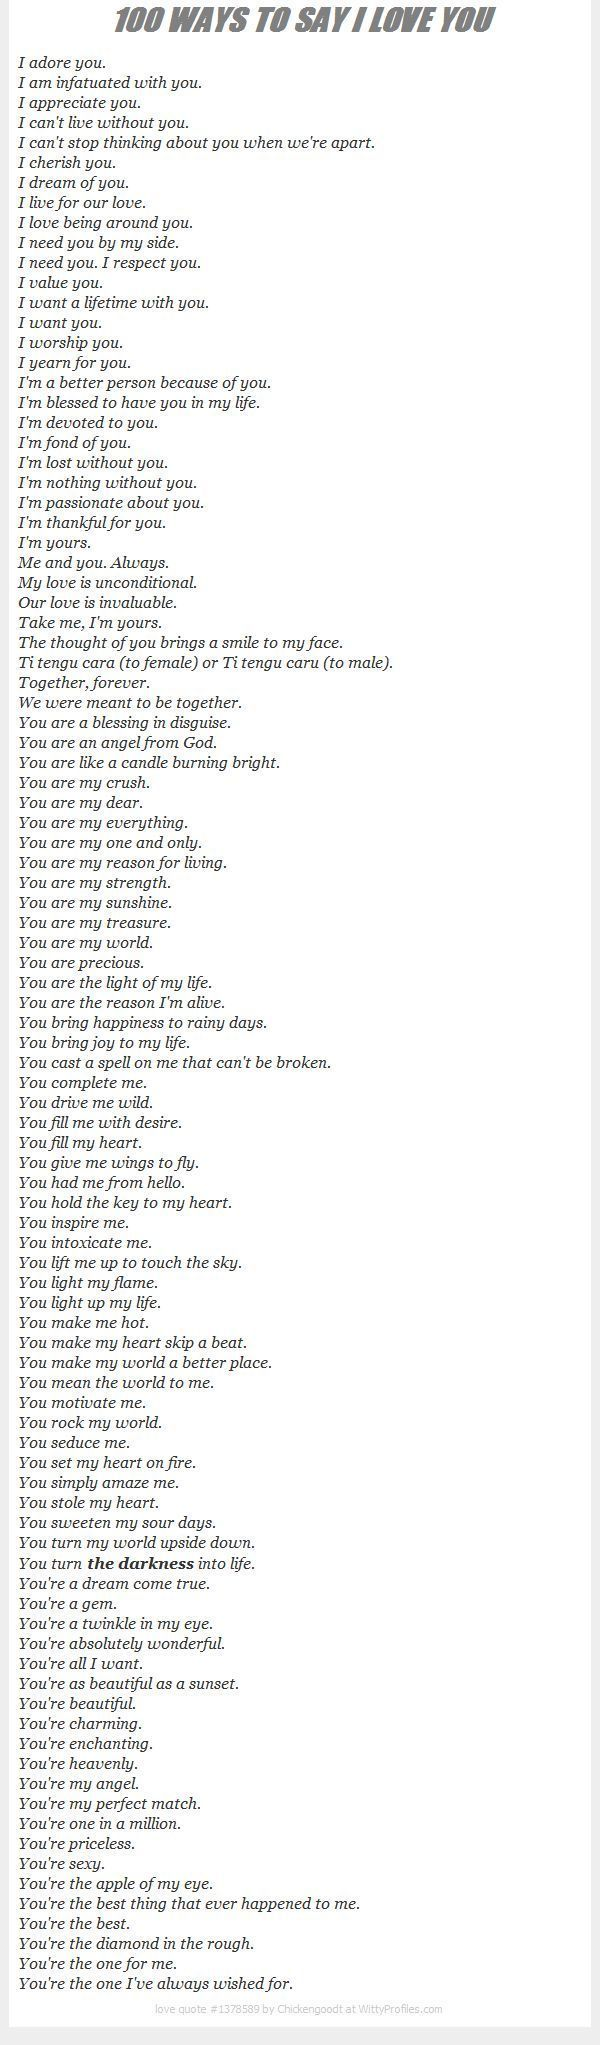 100 Ways To Say I Love You                                                                                                                                                                                 More